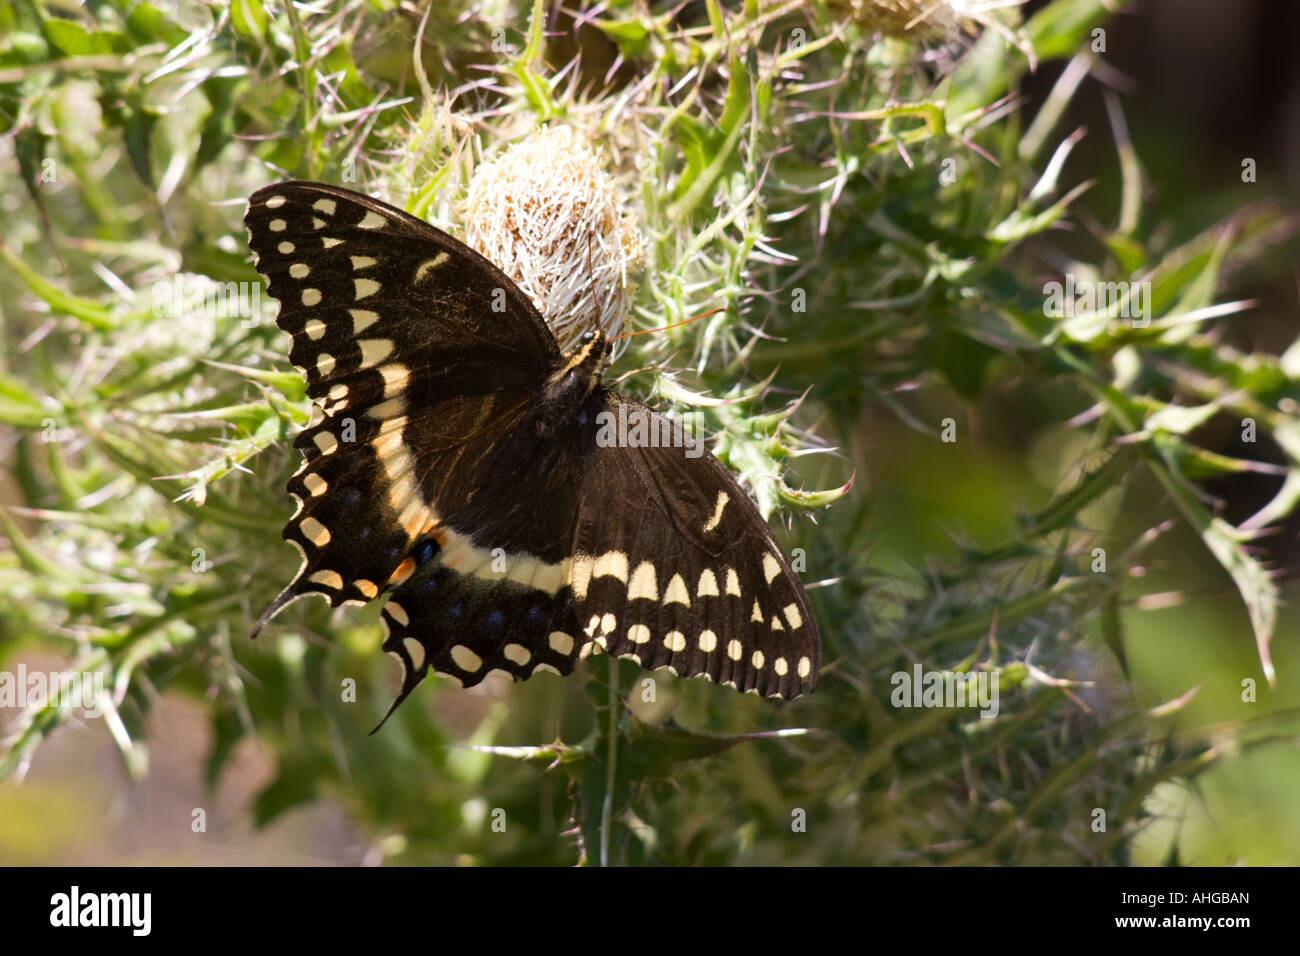 A swallowtail butterfly. - Stock Image